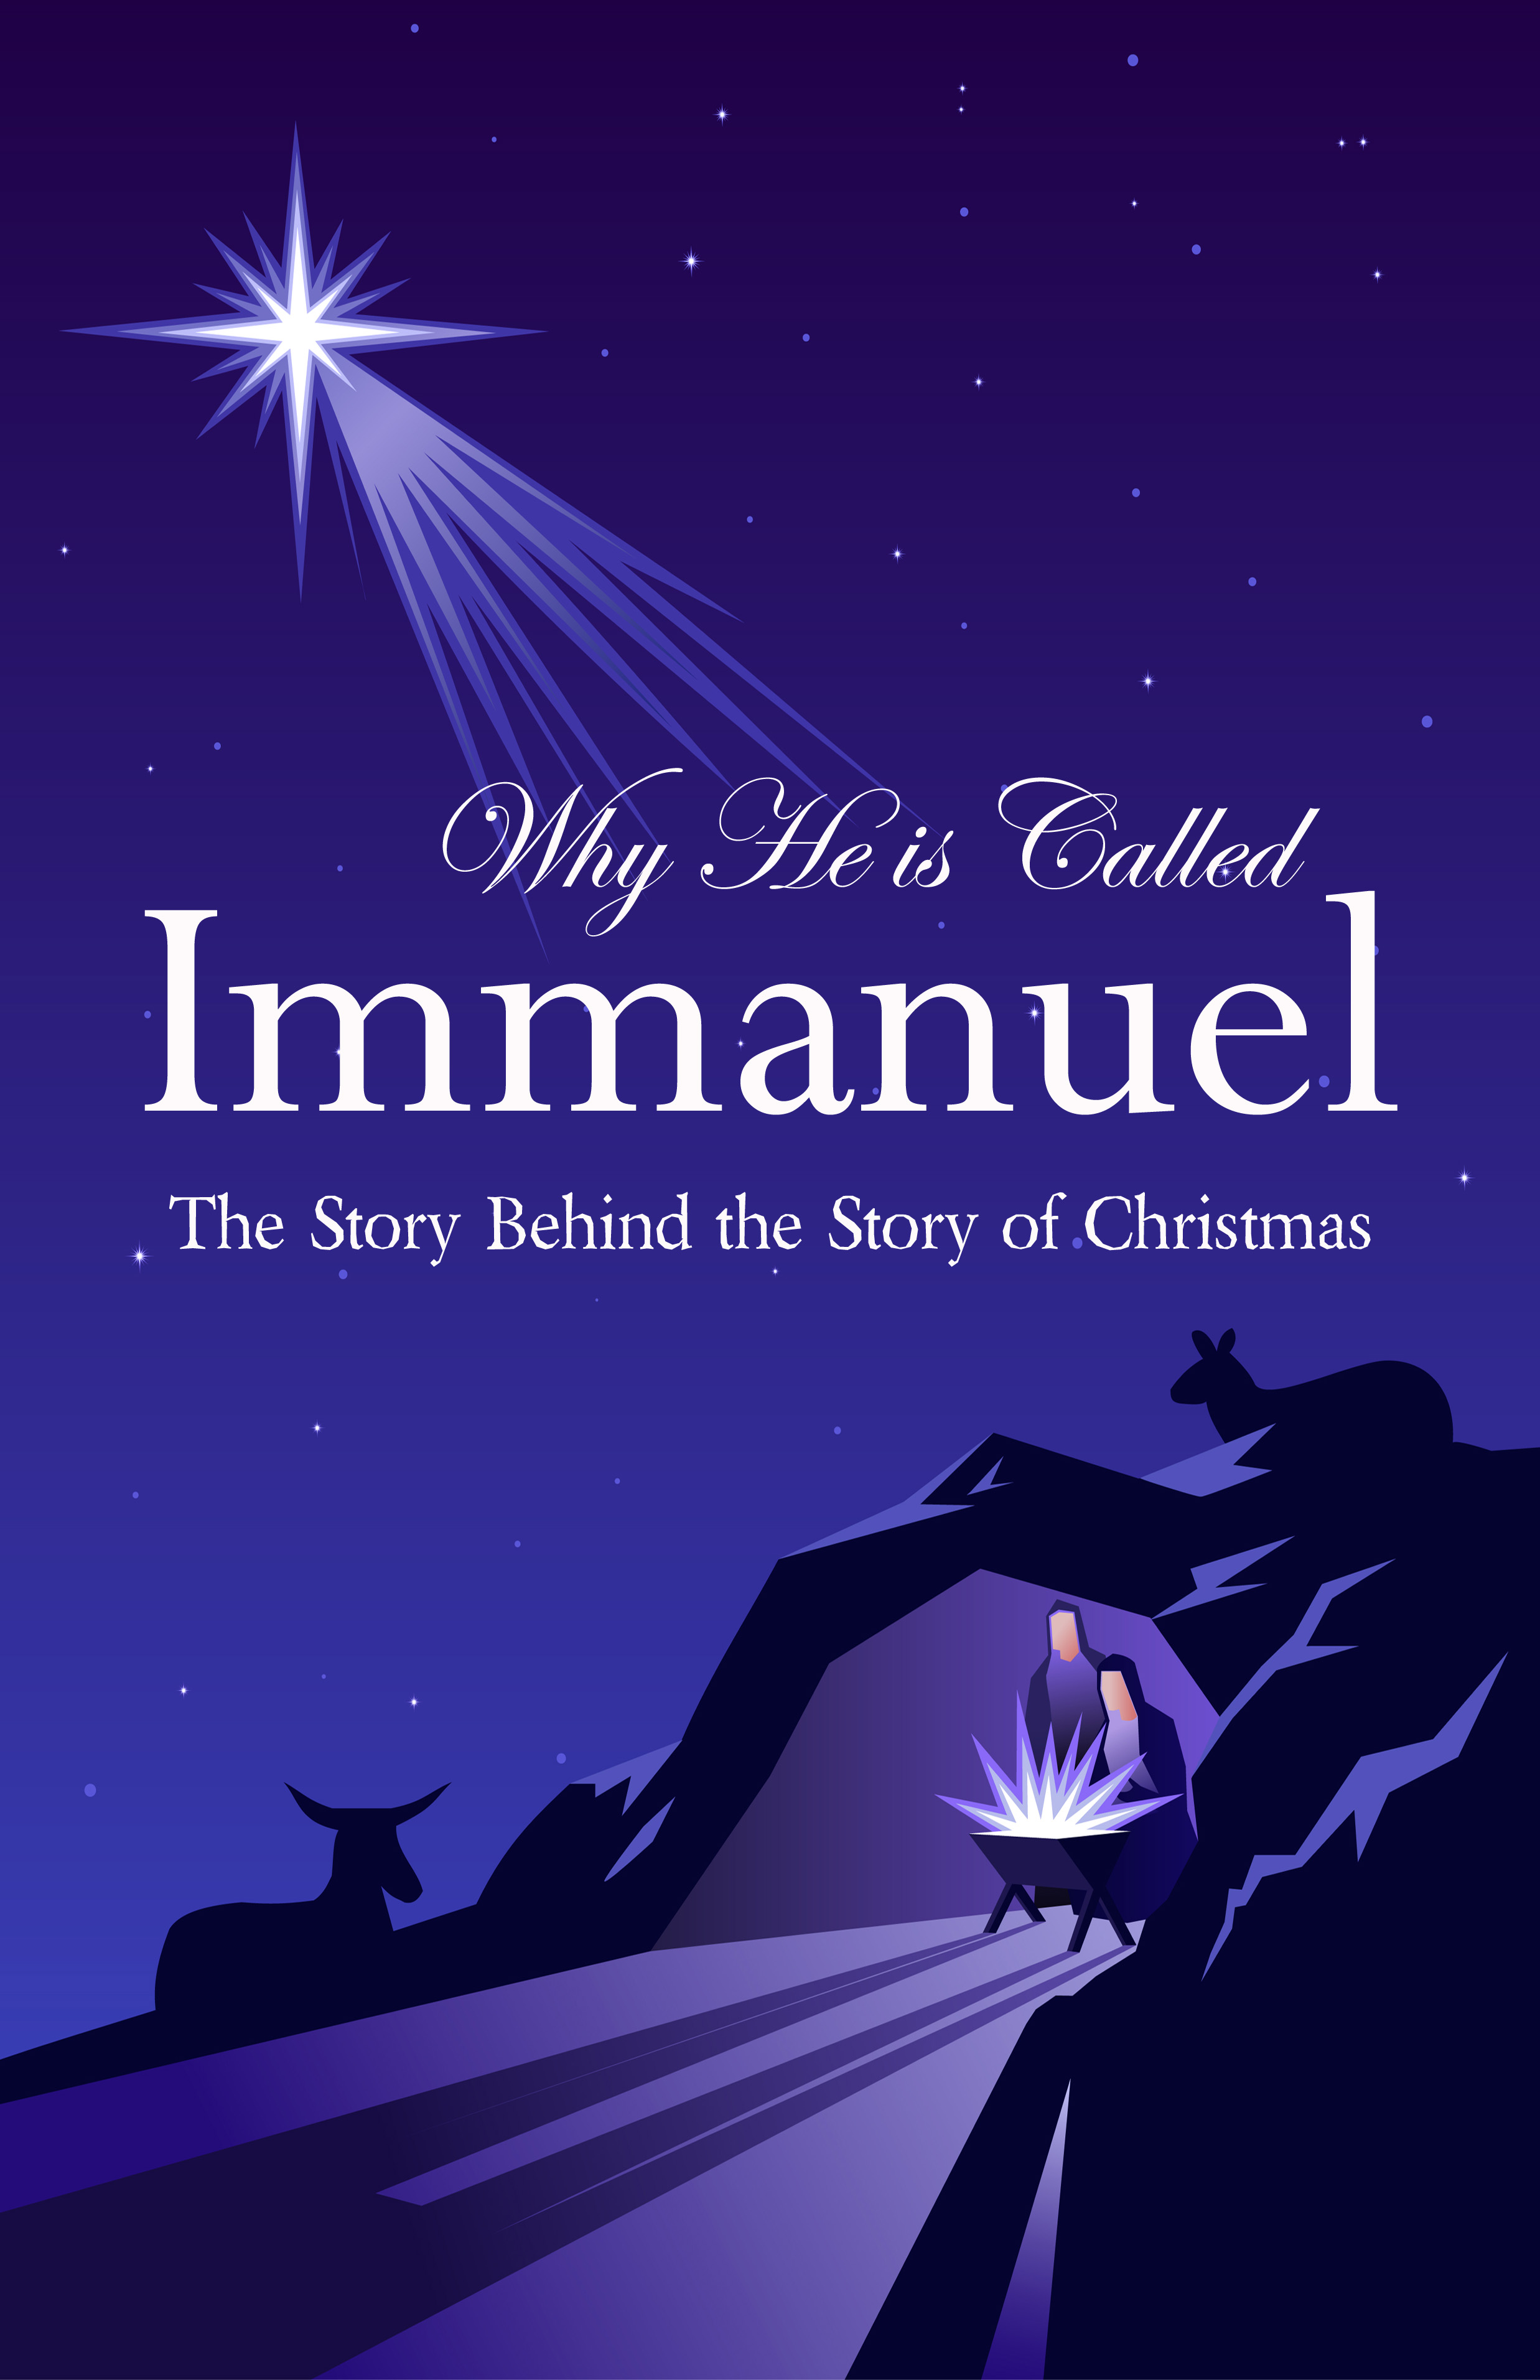 Why He is Called Immanuel: The Story Behind the Story of Christmas